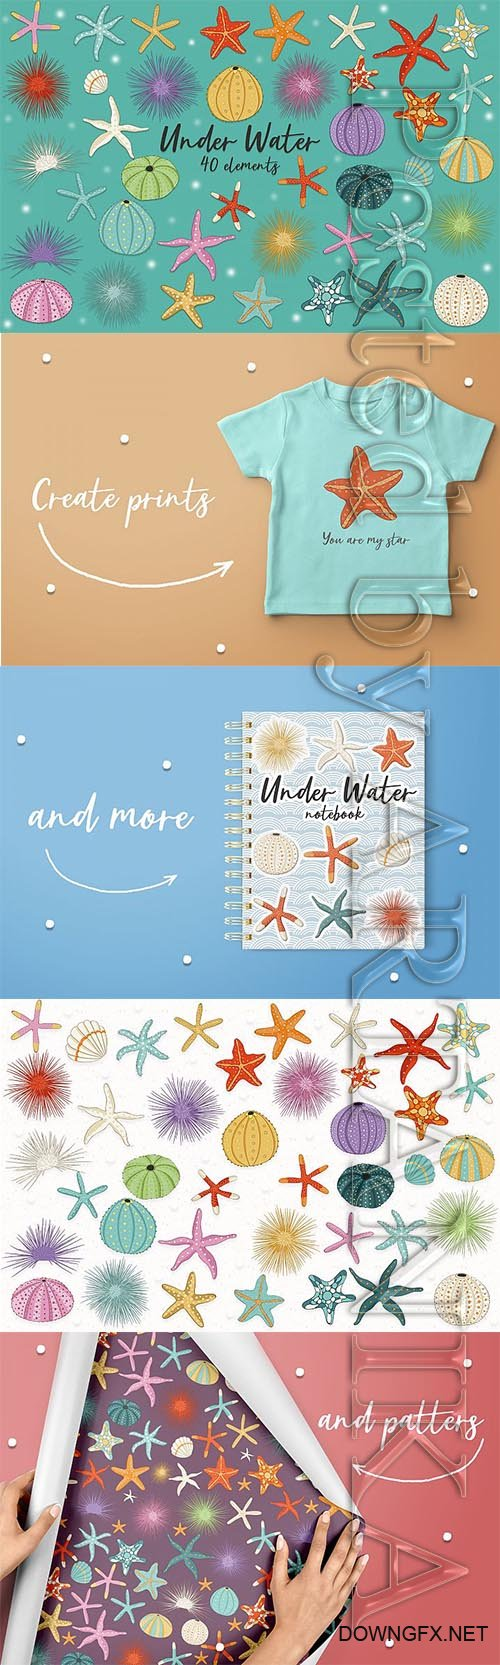 Designbundles - Under Water designs for prints and patterns